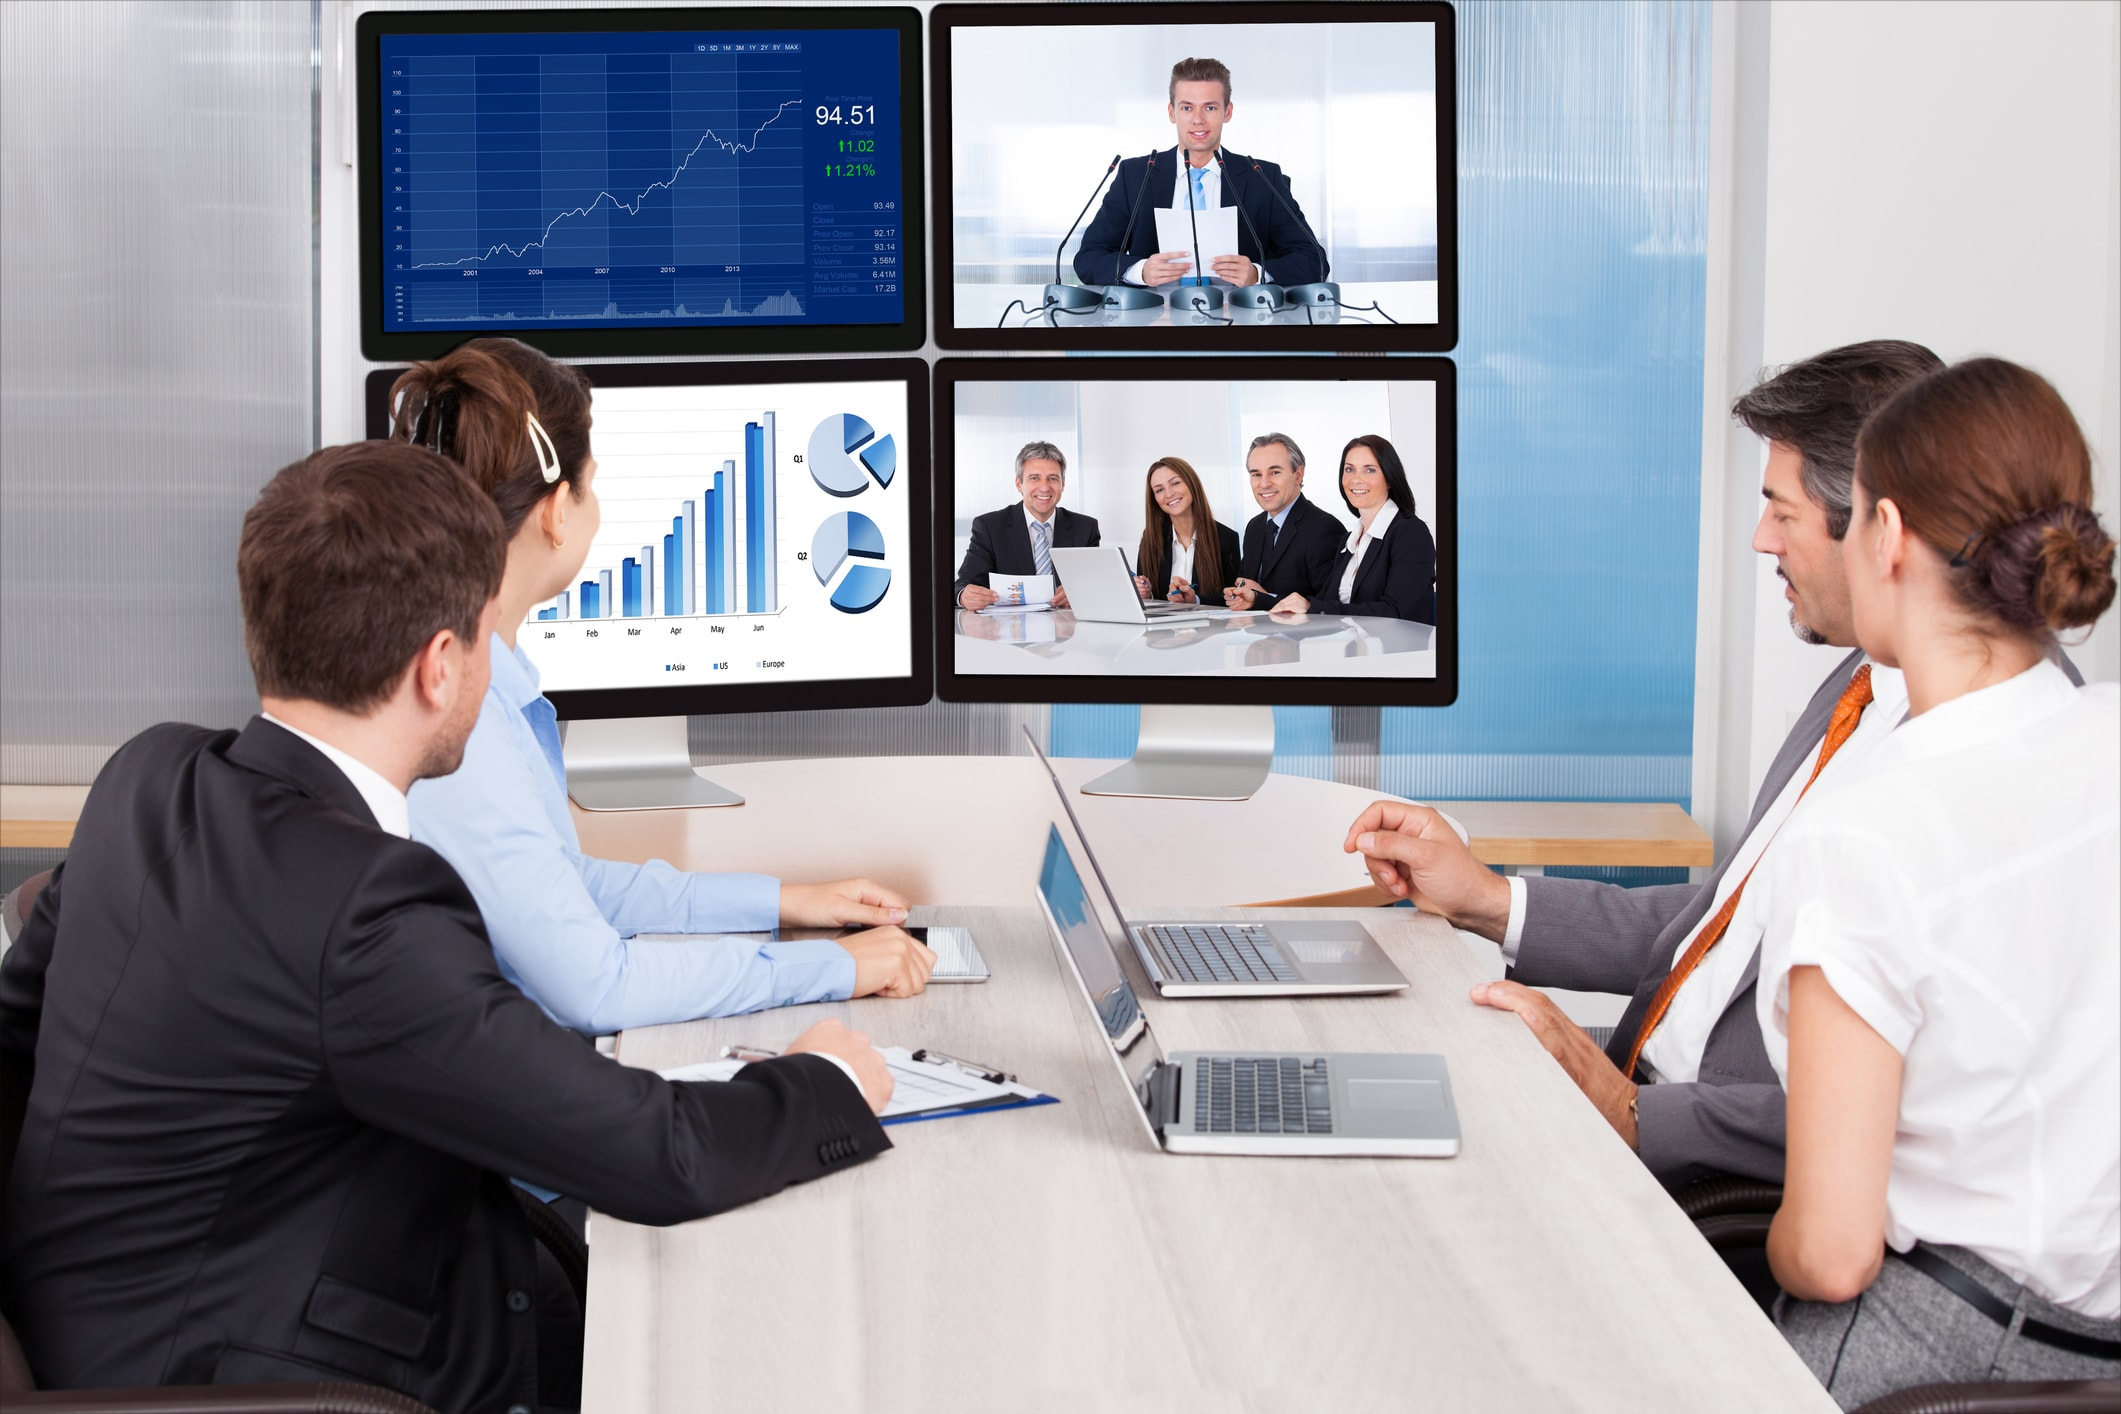 Live Streaming Company - meetings and reports